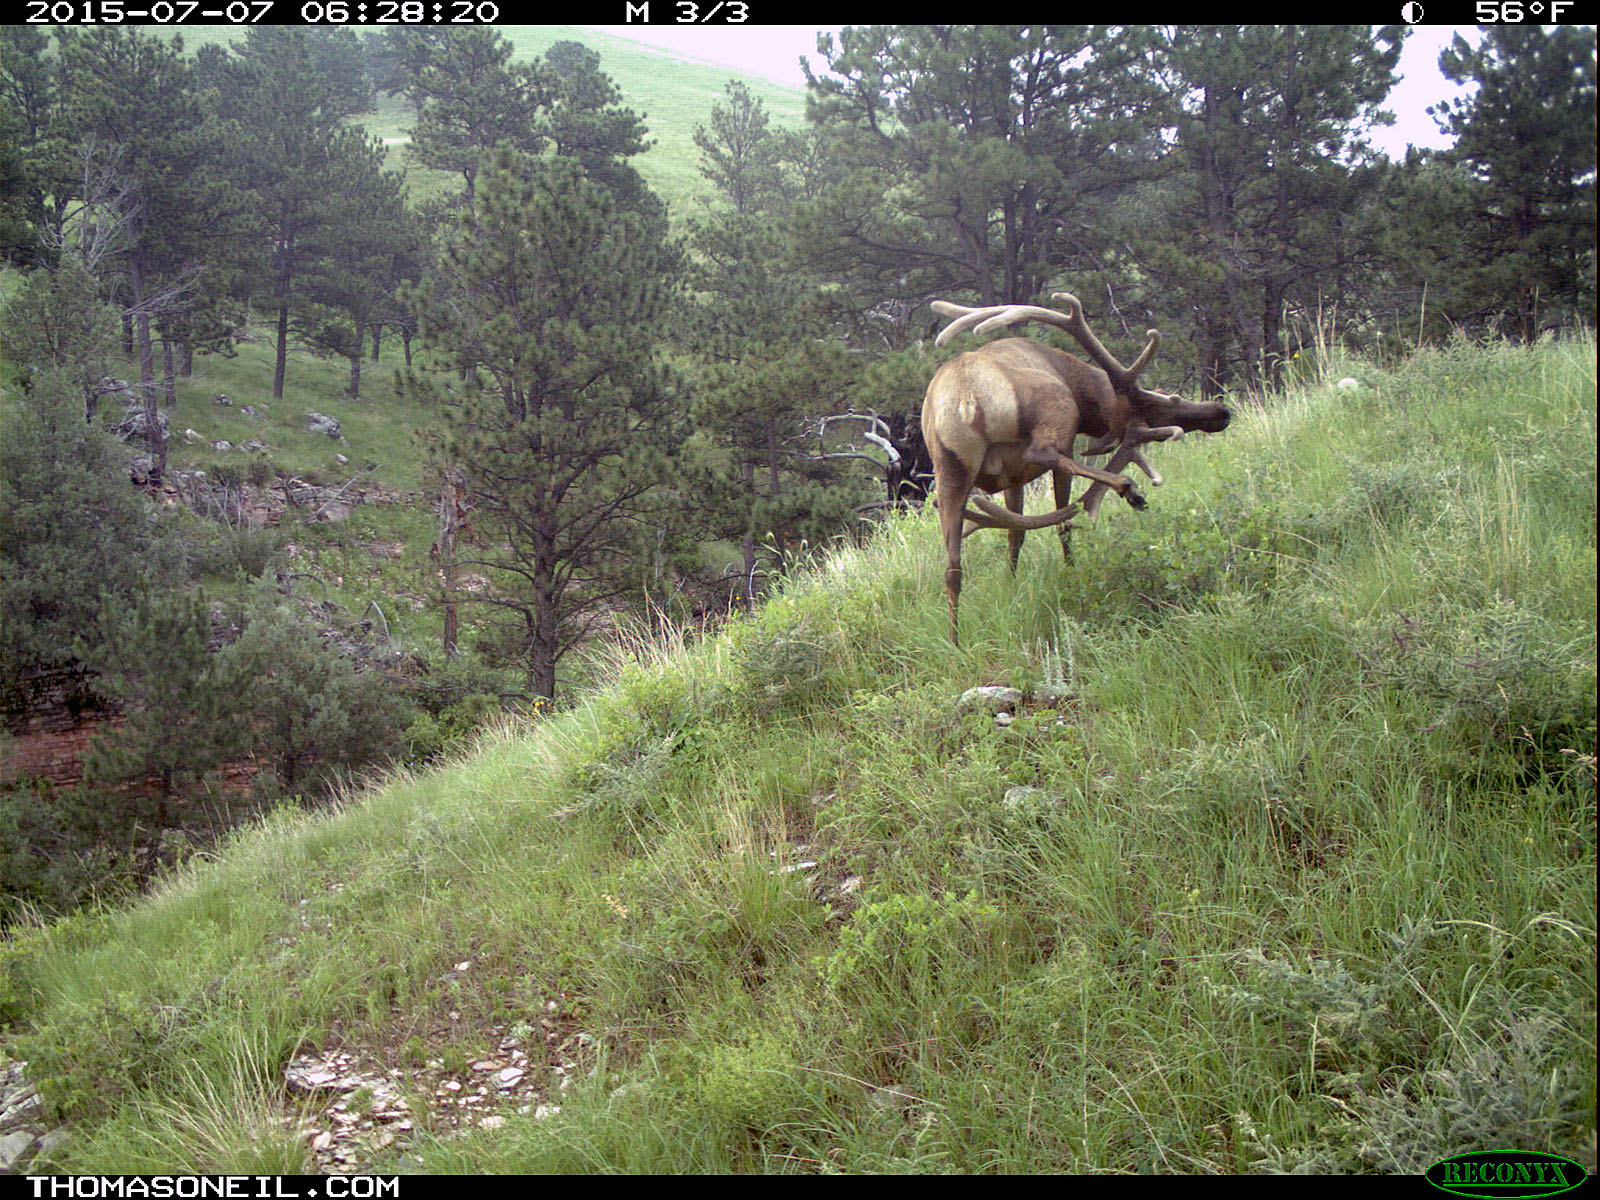 Elk scratching sequence on trailcam, 7 of 7, Wind Cave National Park, July 2015,   Click for next photo.